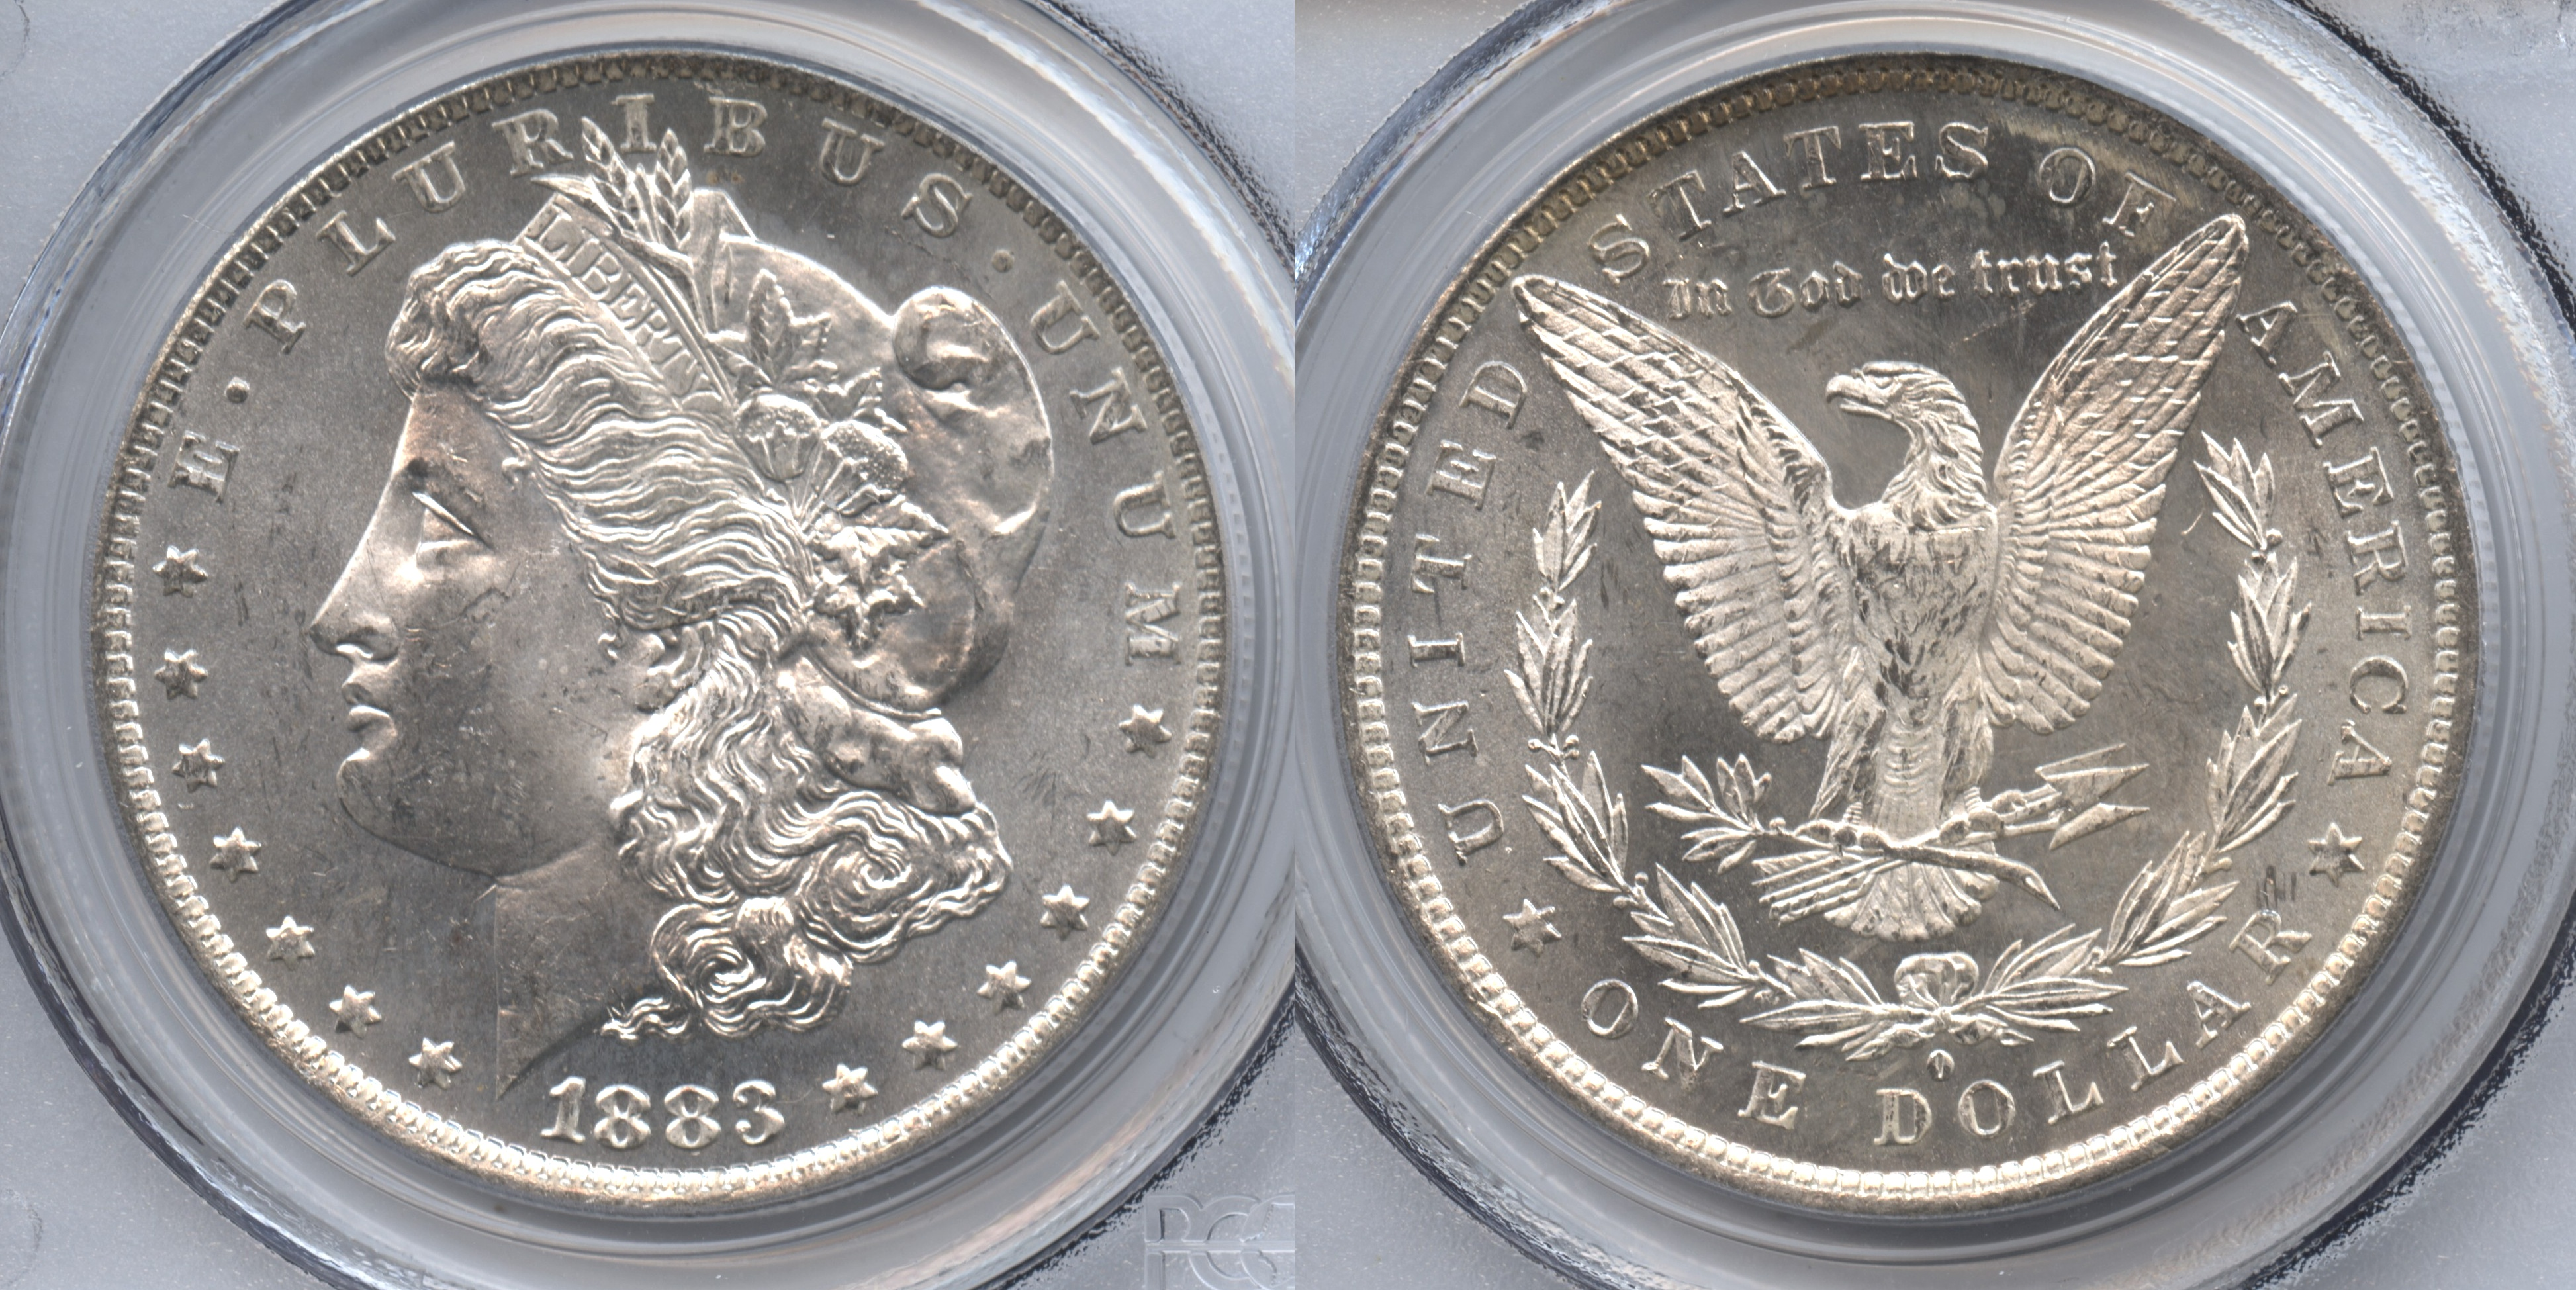 1883-O Morgan Silver Dollar PCGS MS-64 #a VAM-30, Dash Under 8, O Tilted Right